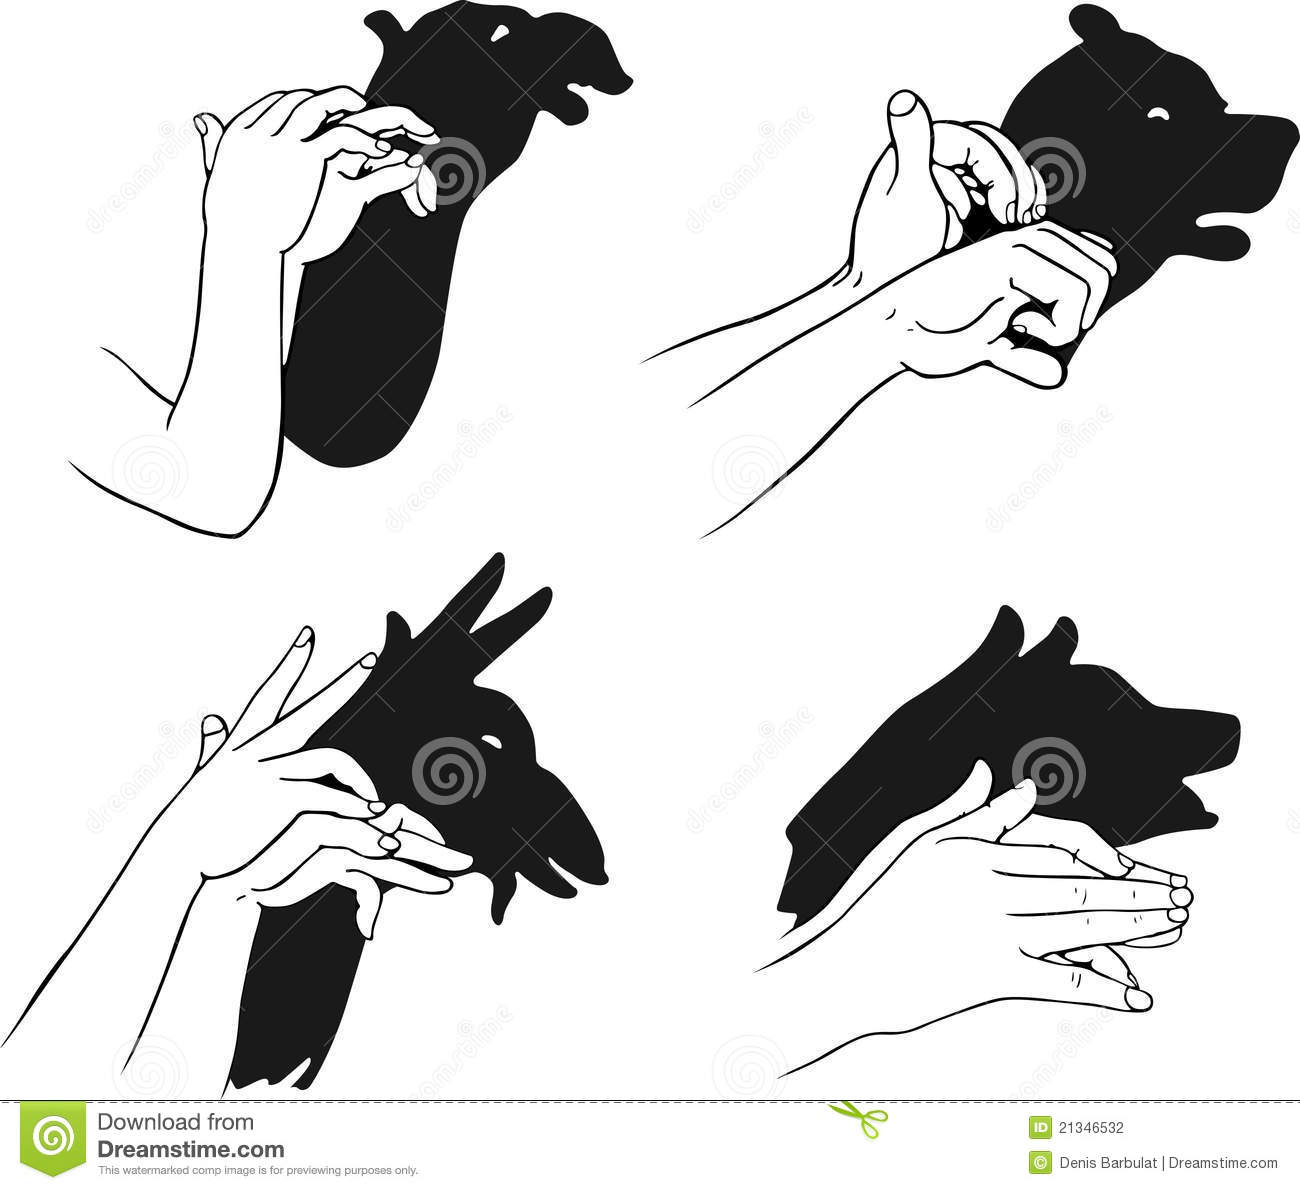 shadow of hands forming animal head stock vector illustration of